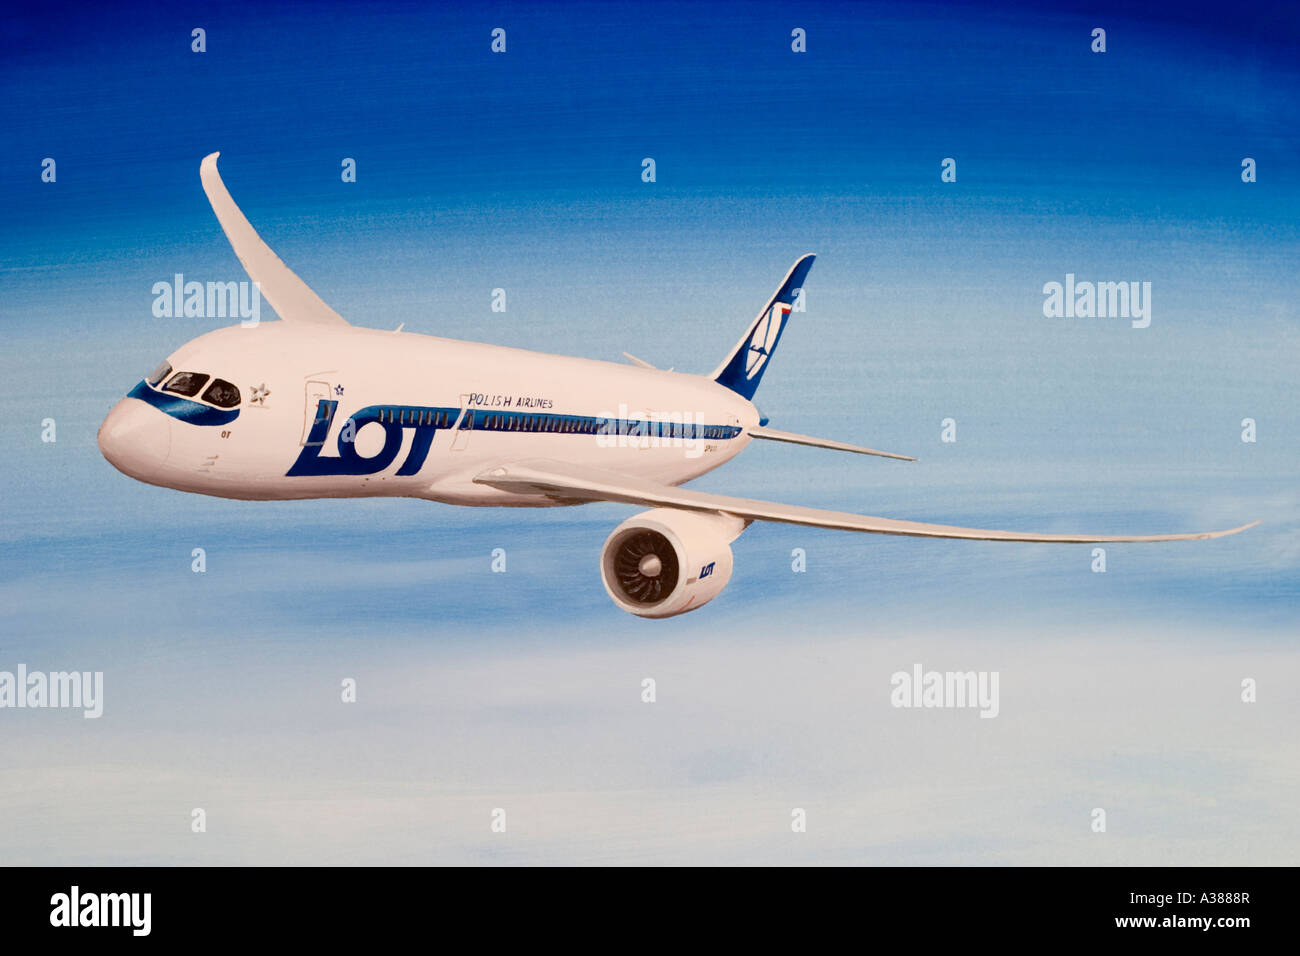 Boeing 787 Dreamliner in LOT Polish Airlines livery. Stock Photo